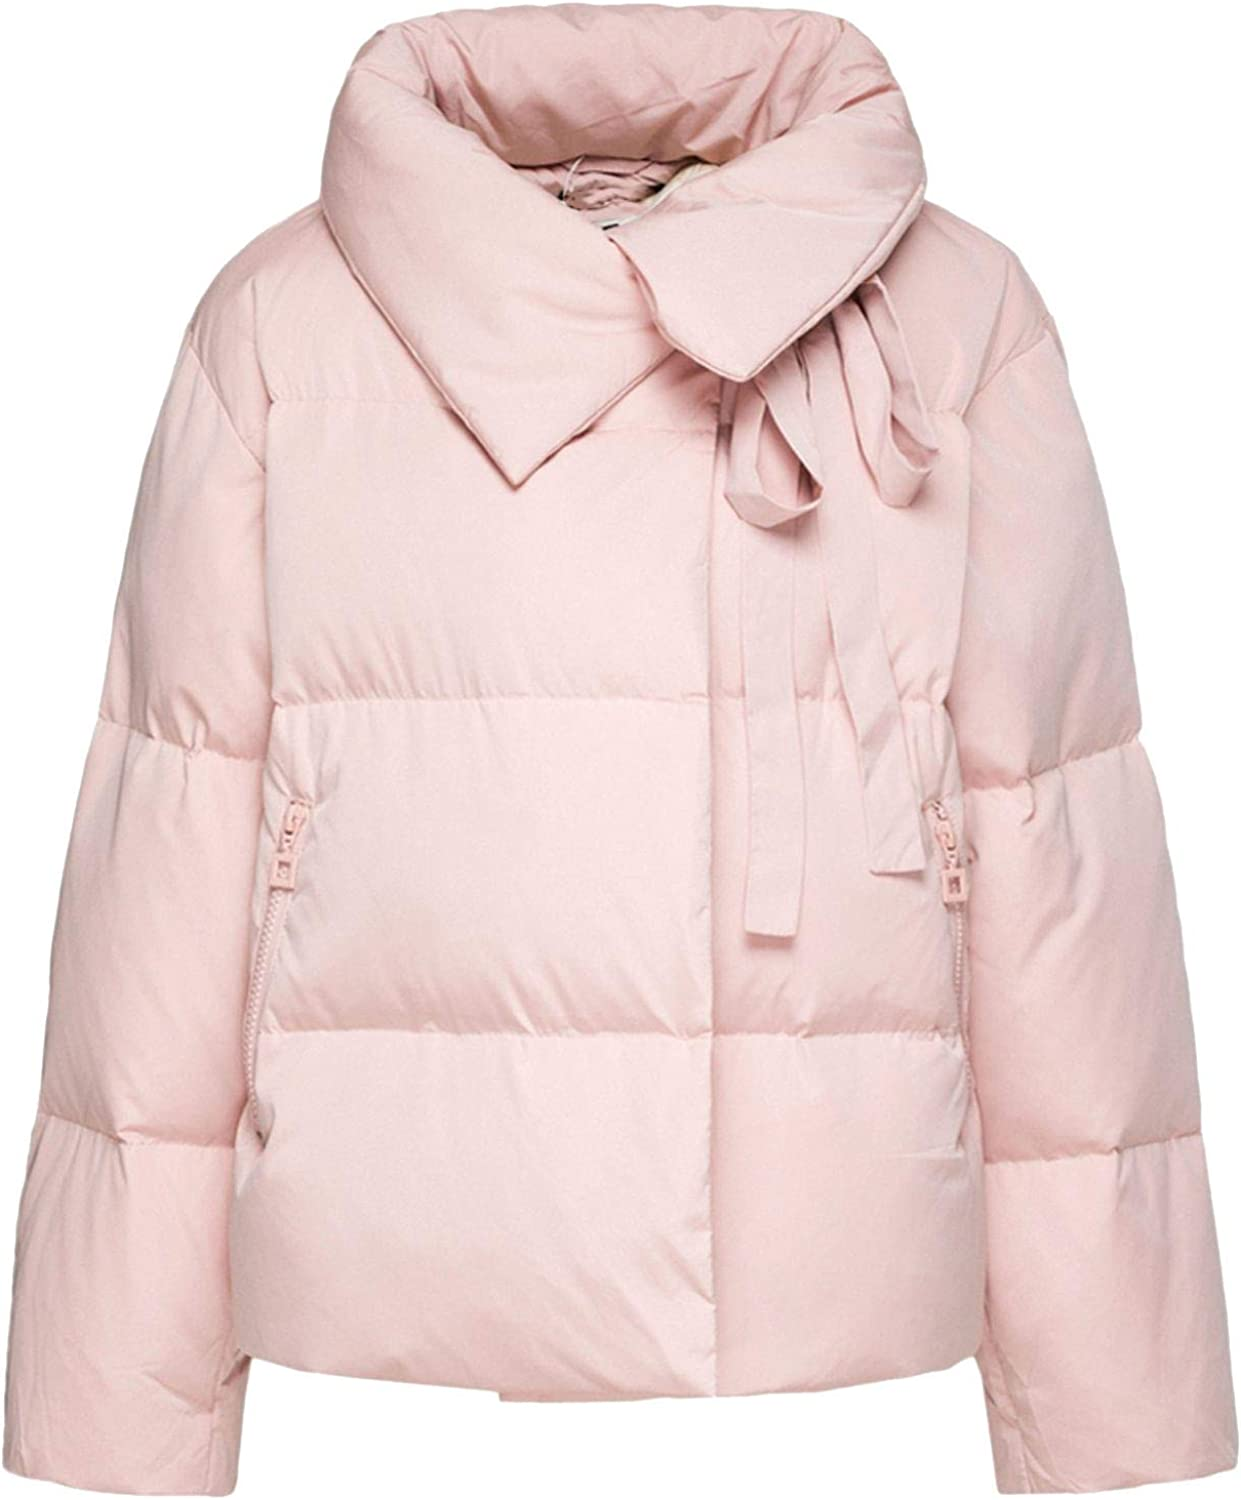 The small cat Winter Jacket Women Plus Size L Womens Parkas Thicken Outerwear Solid Coats